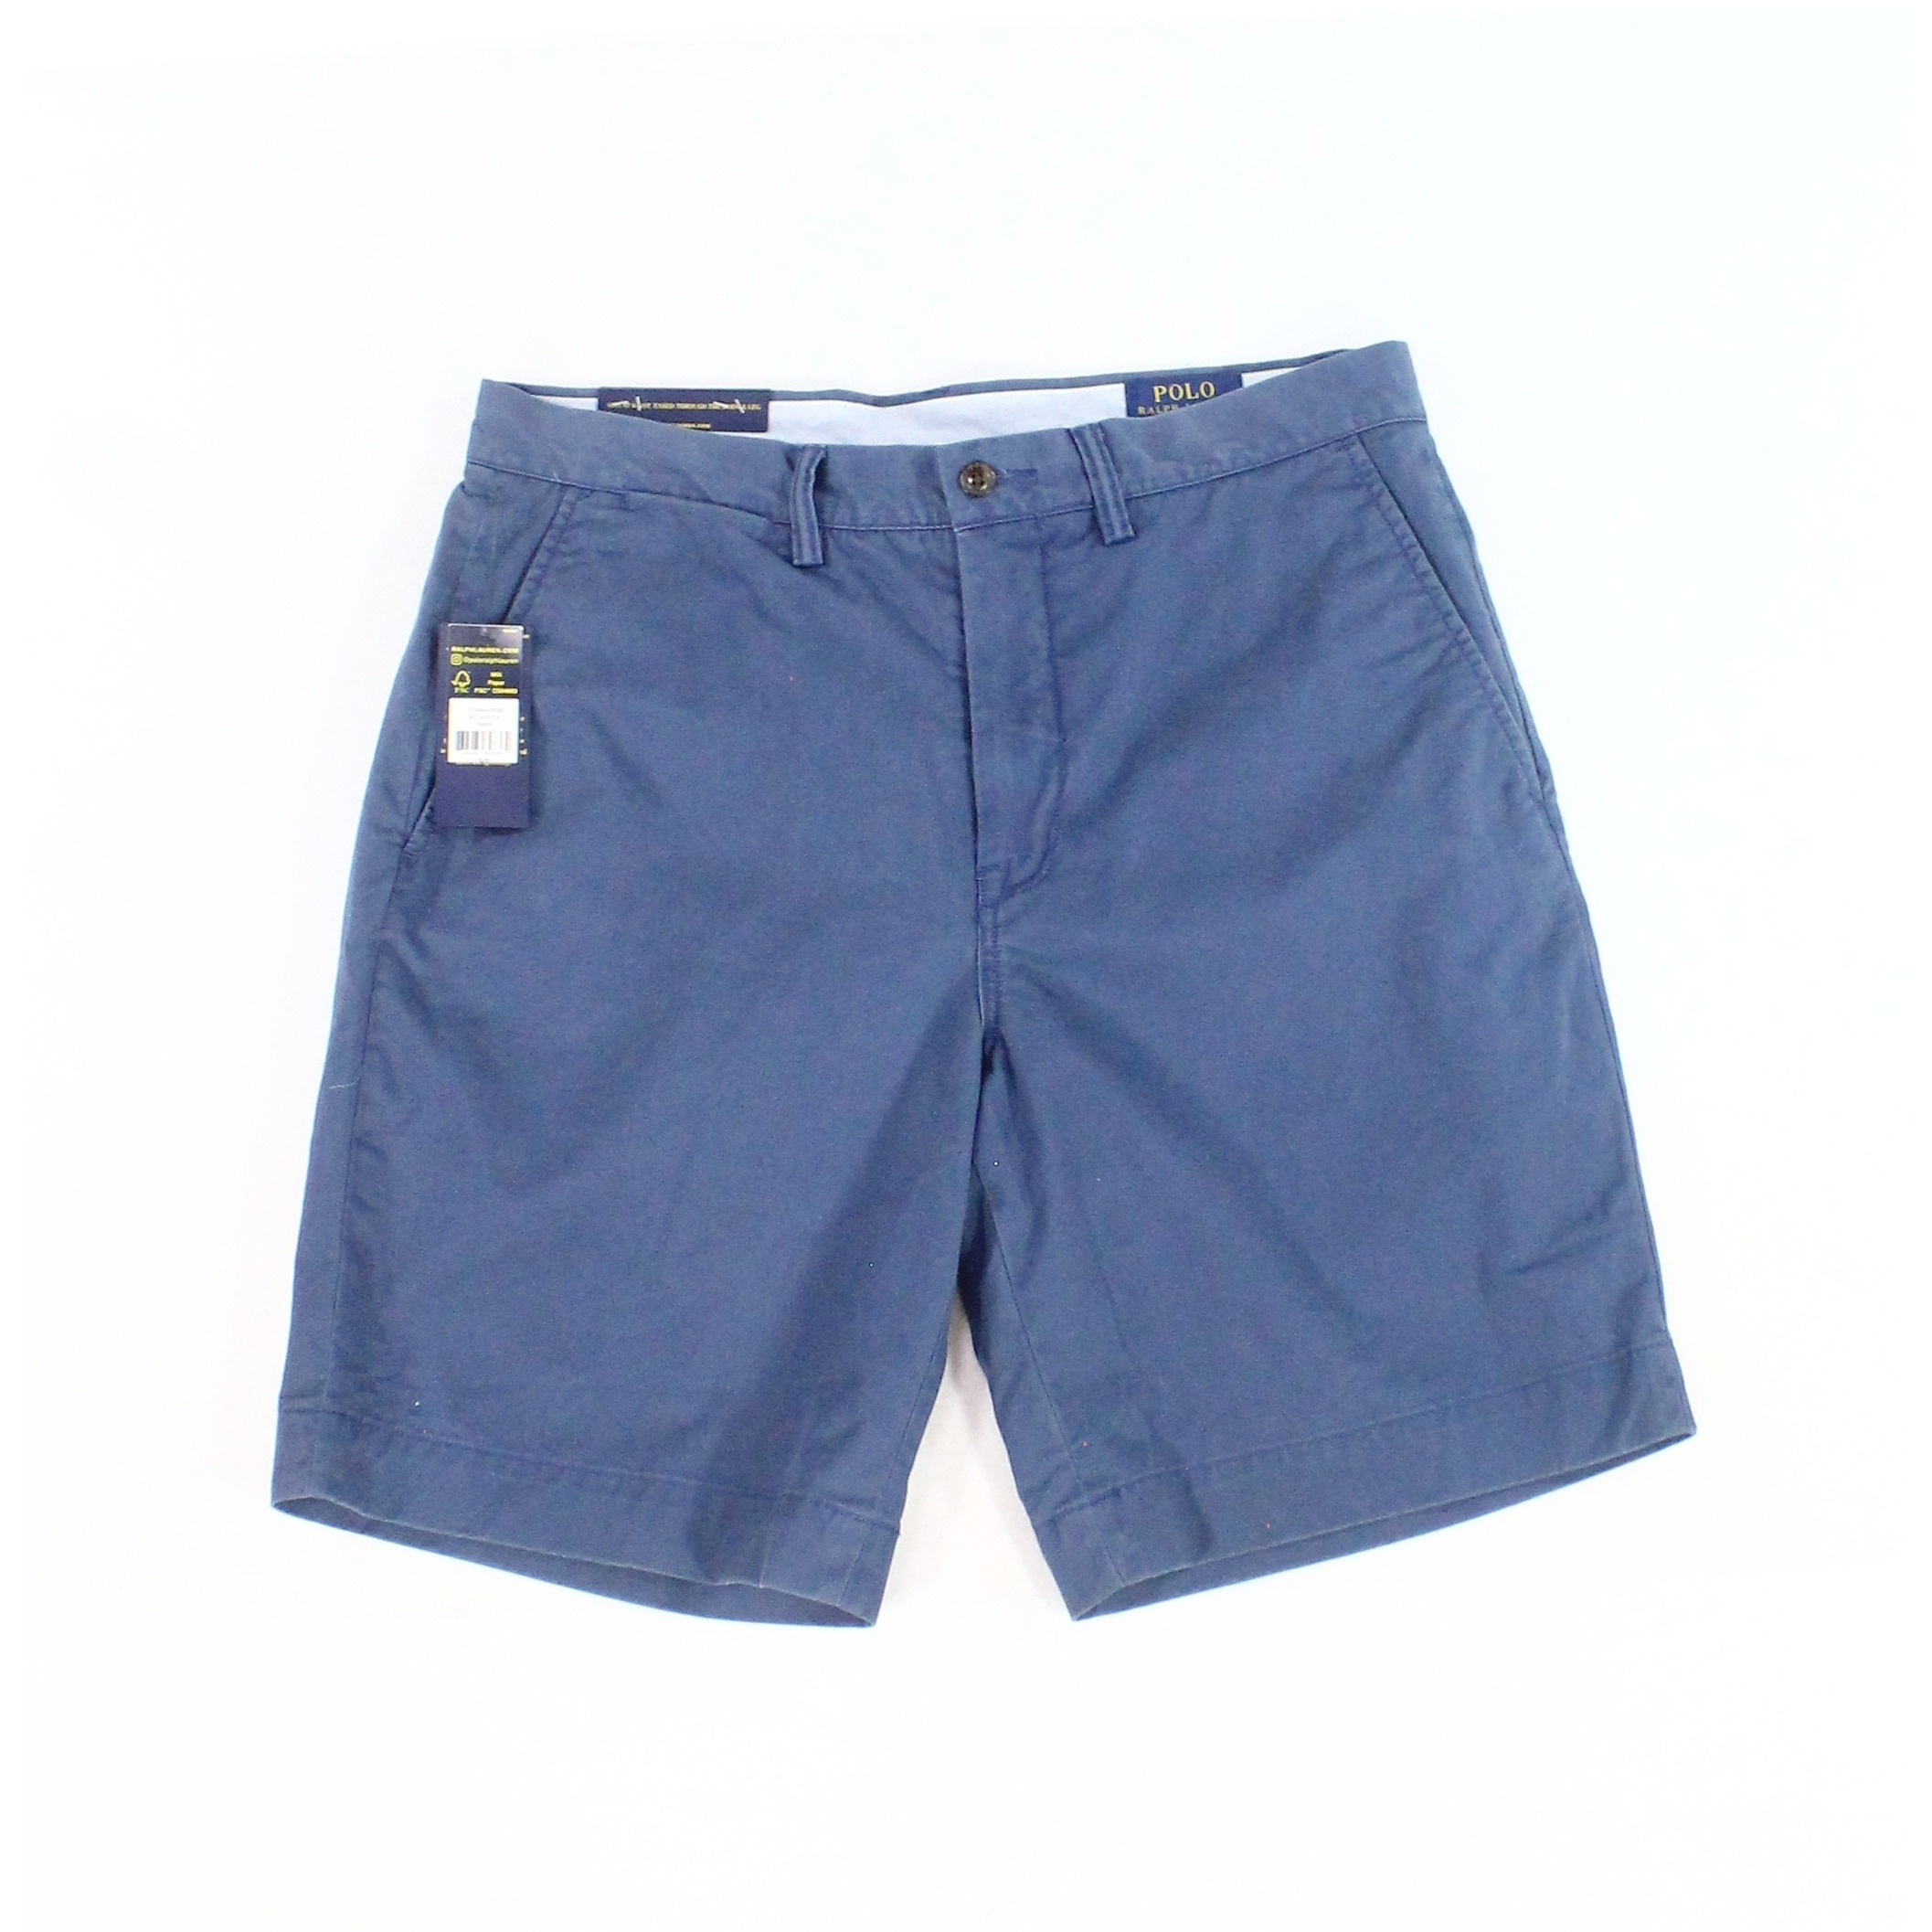 4d0fba10b4 Shop Polo Ralph Lauren Blue Mens 36 Classic Fit Stretch Chinos Shorts -  Free Shipping Today - Overstock - 28017197